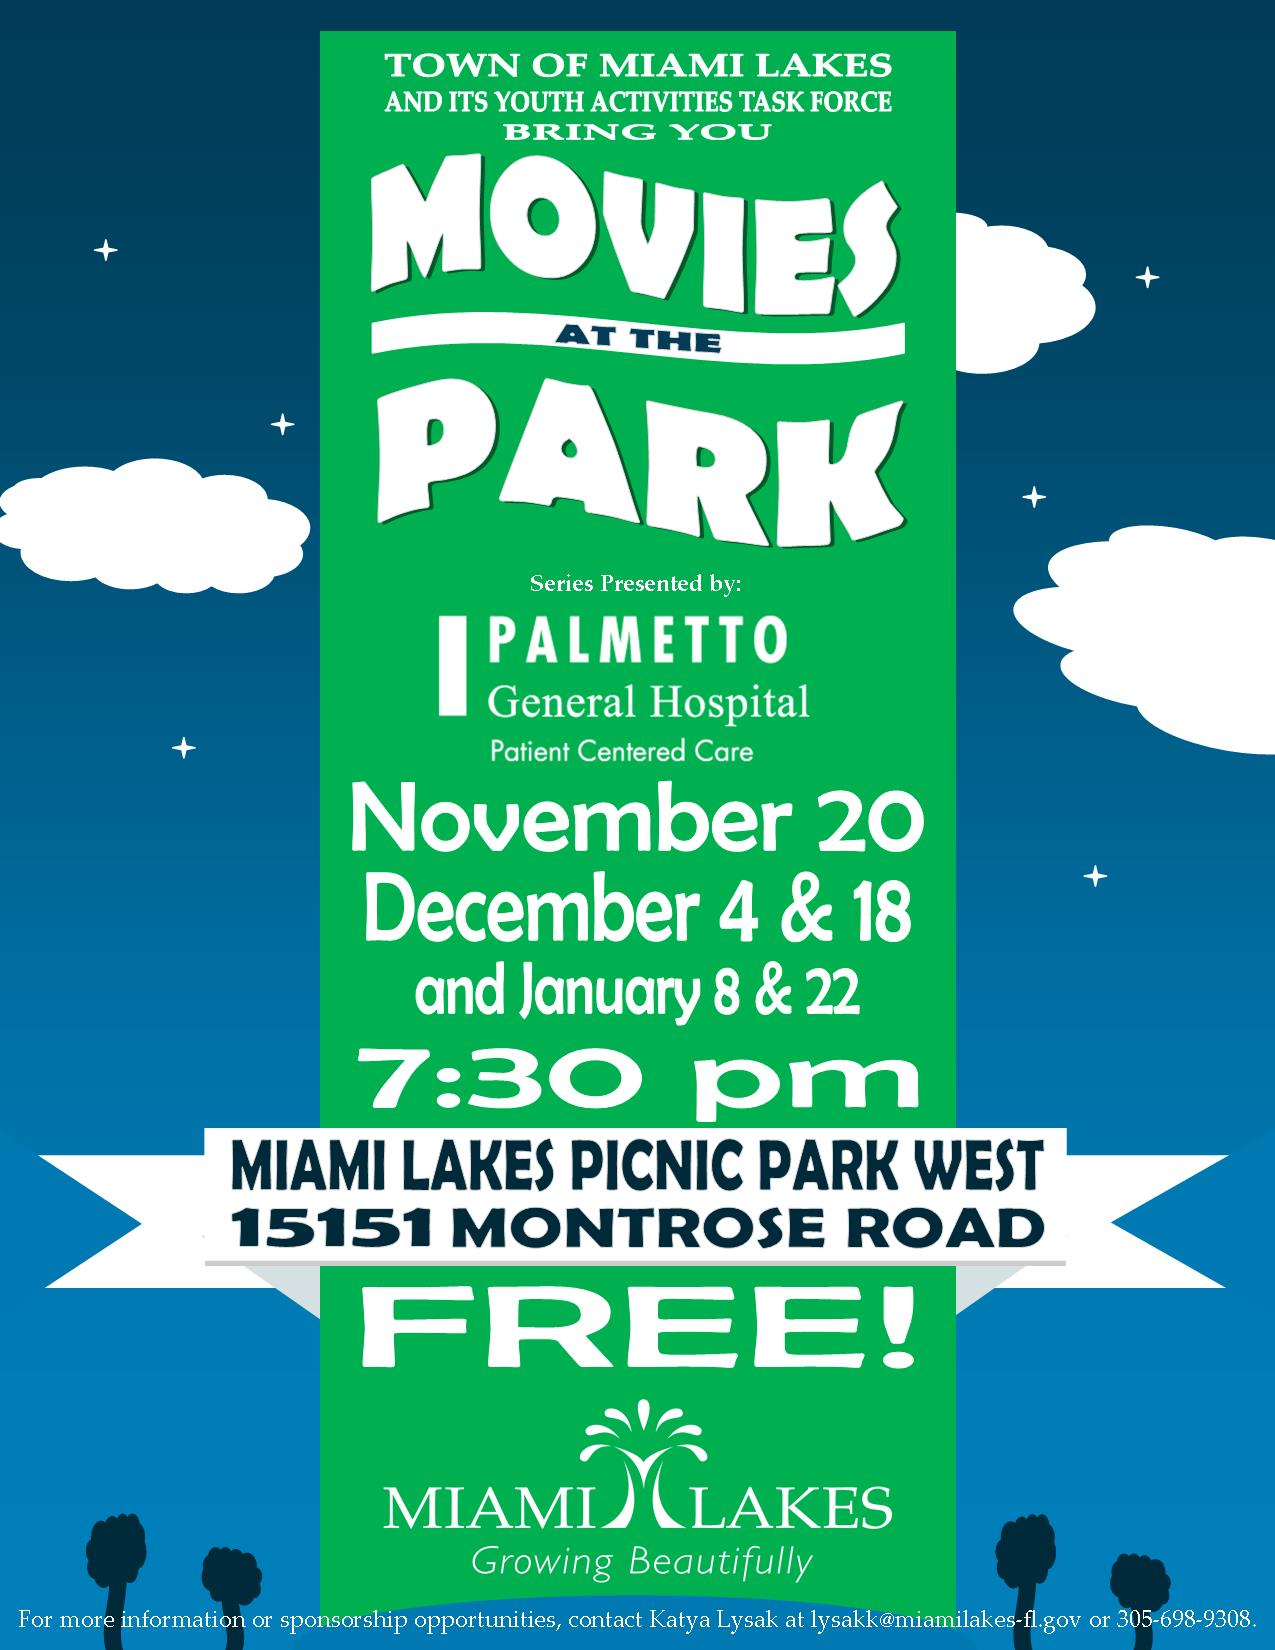 2015 MOVIES IN THE PARK FLYER 3